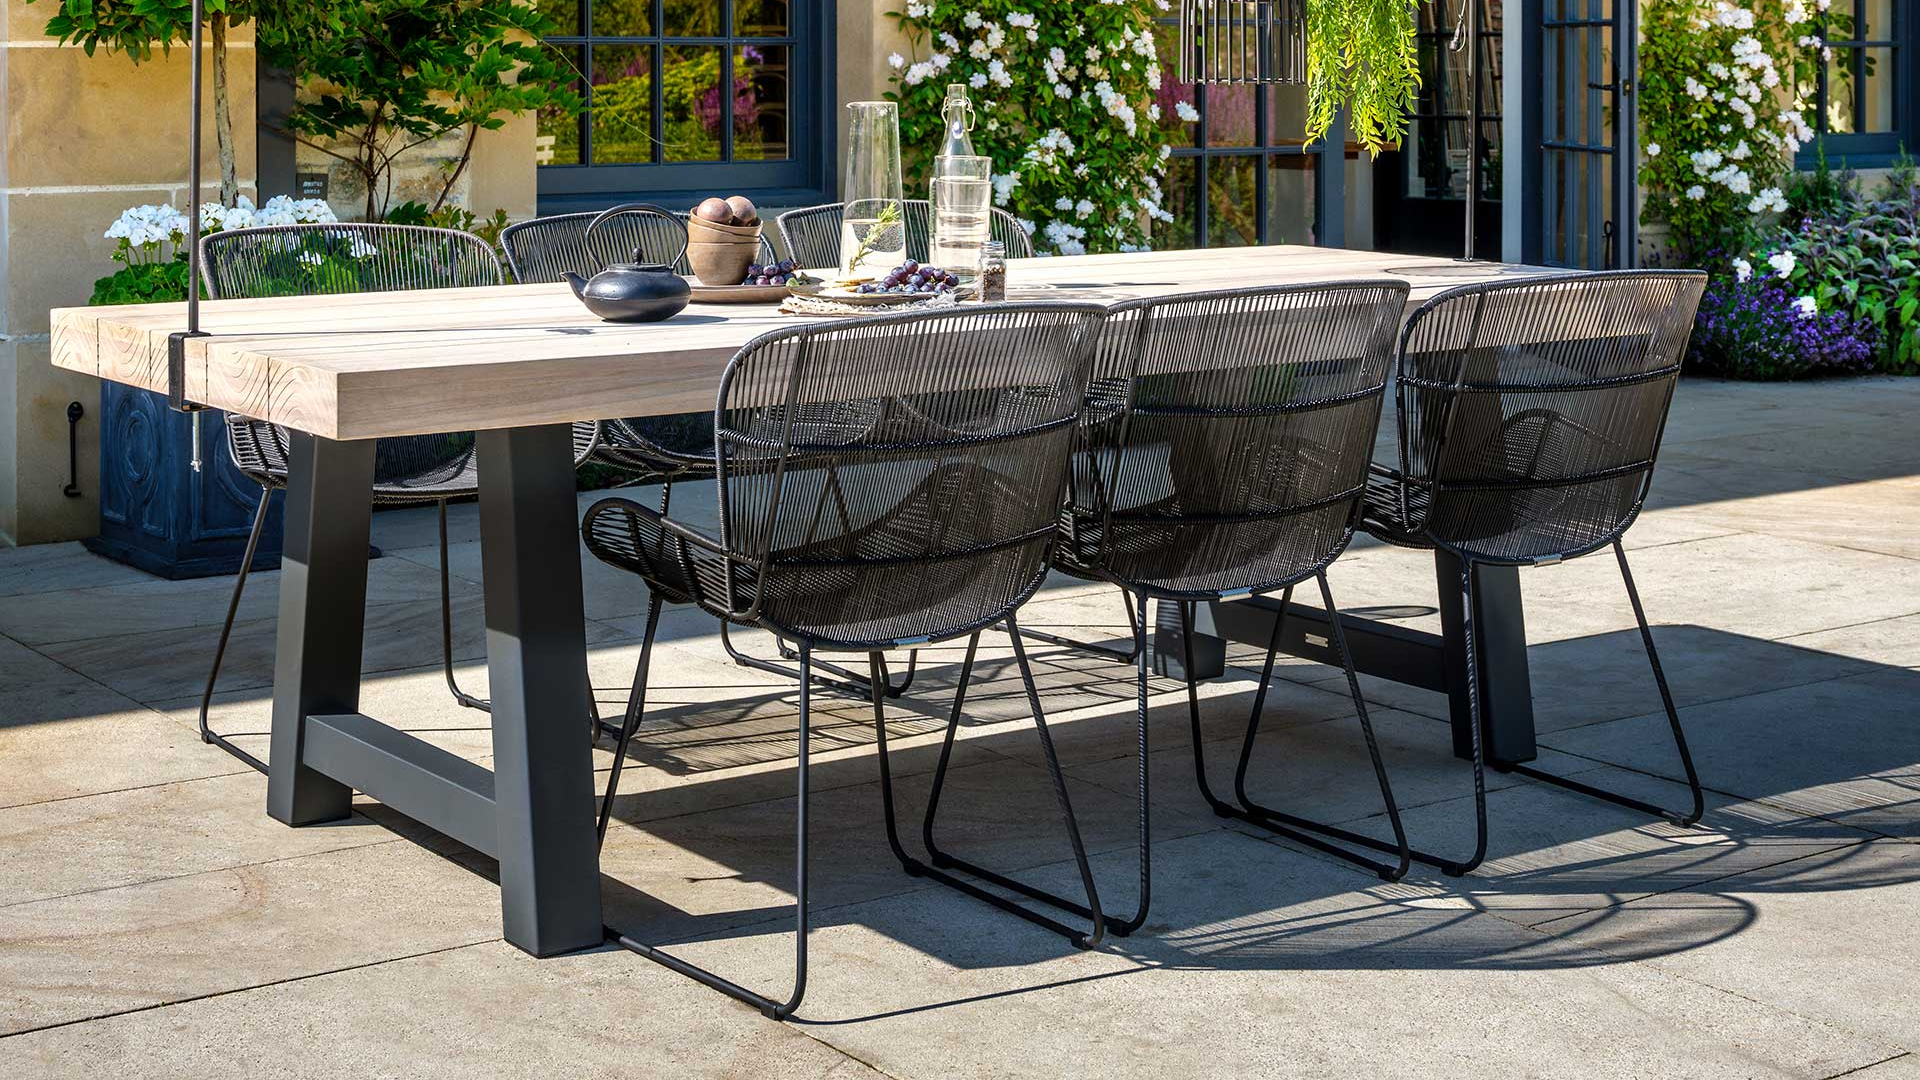 Best Garden Furniture 2021 Relax And Entertain In Style Real Homes